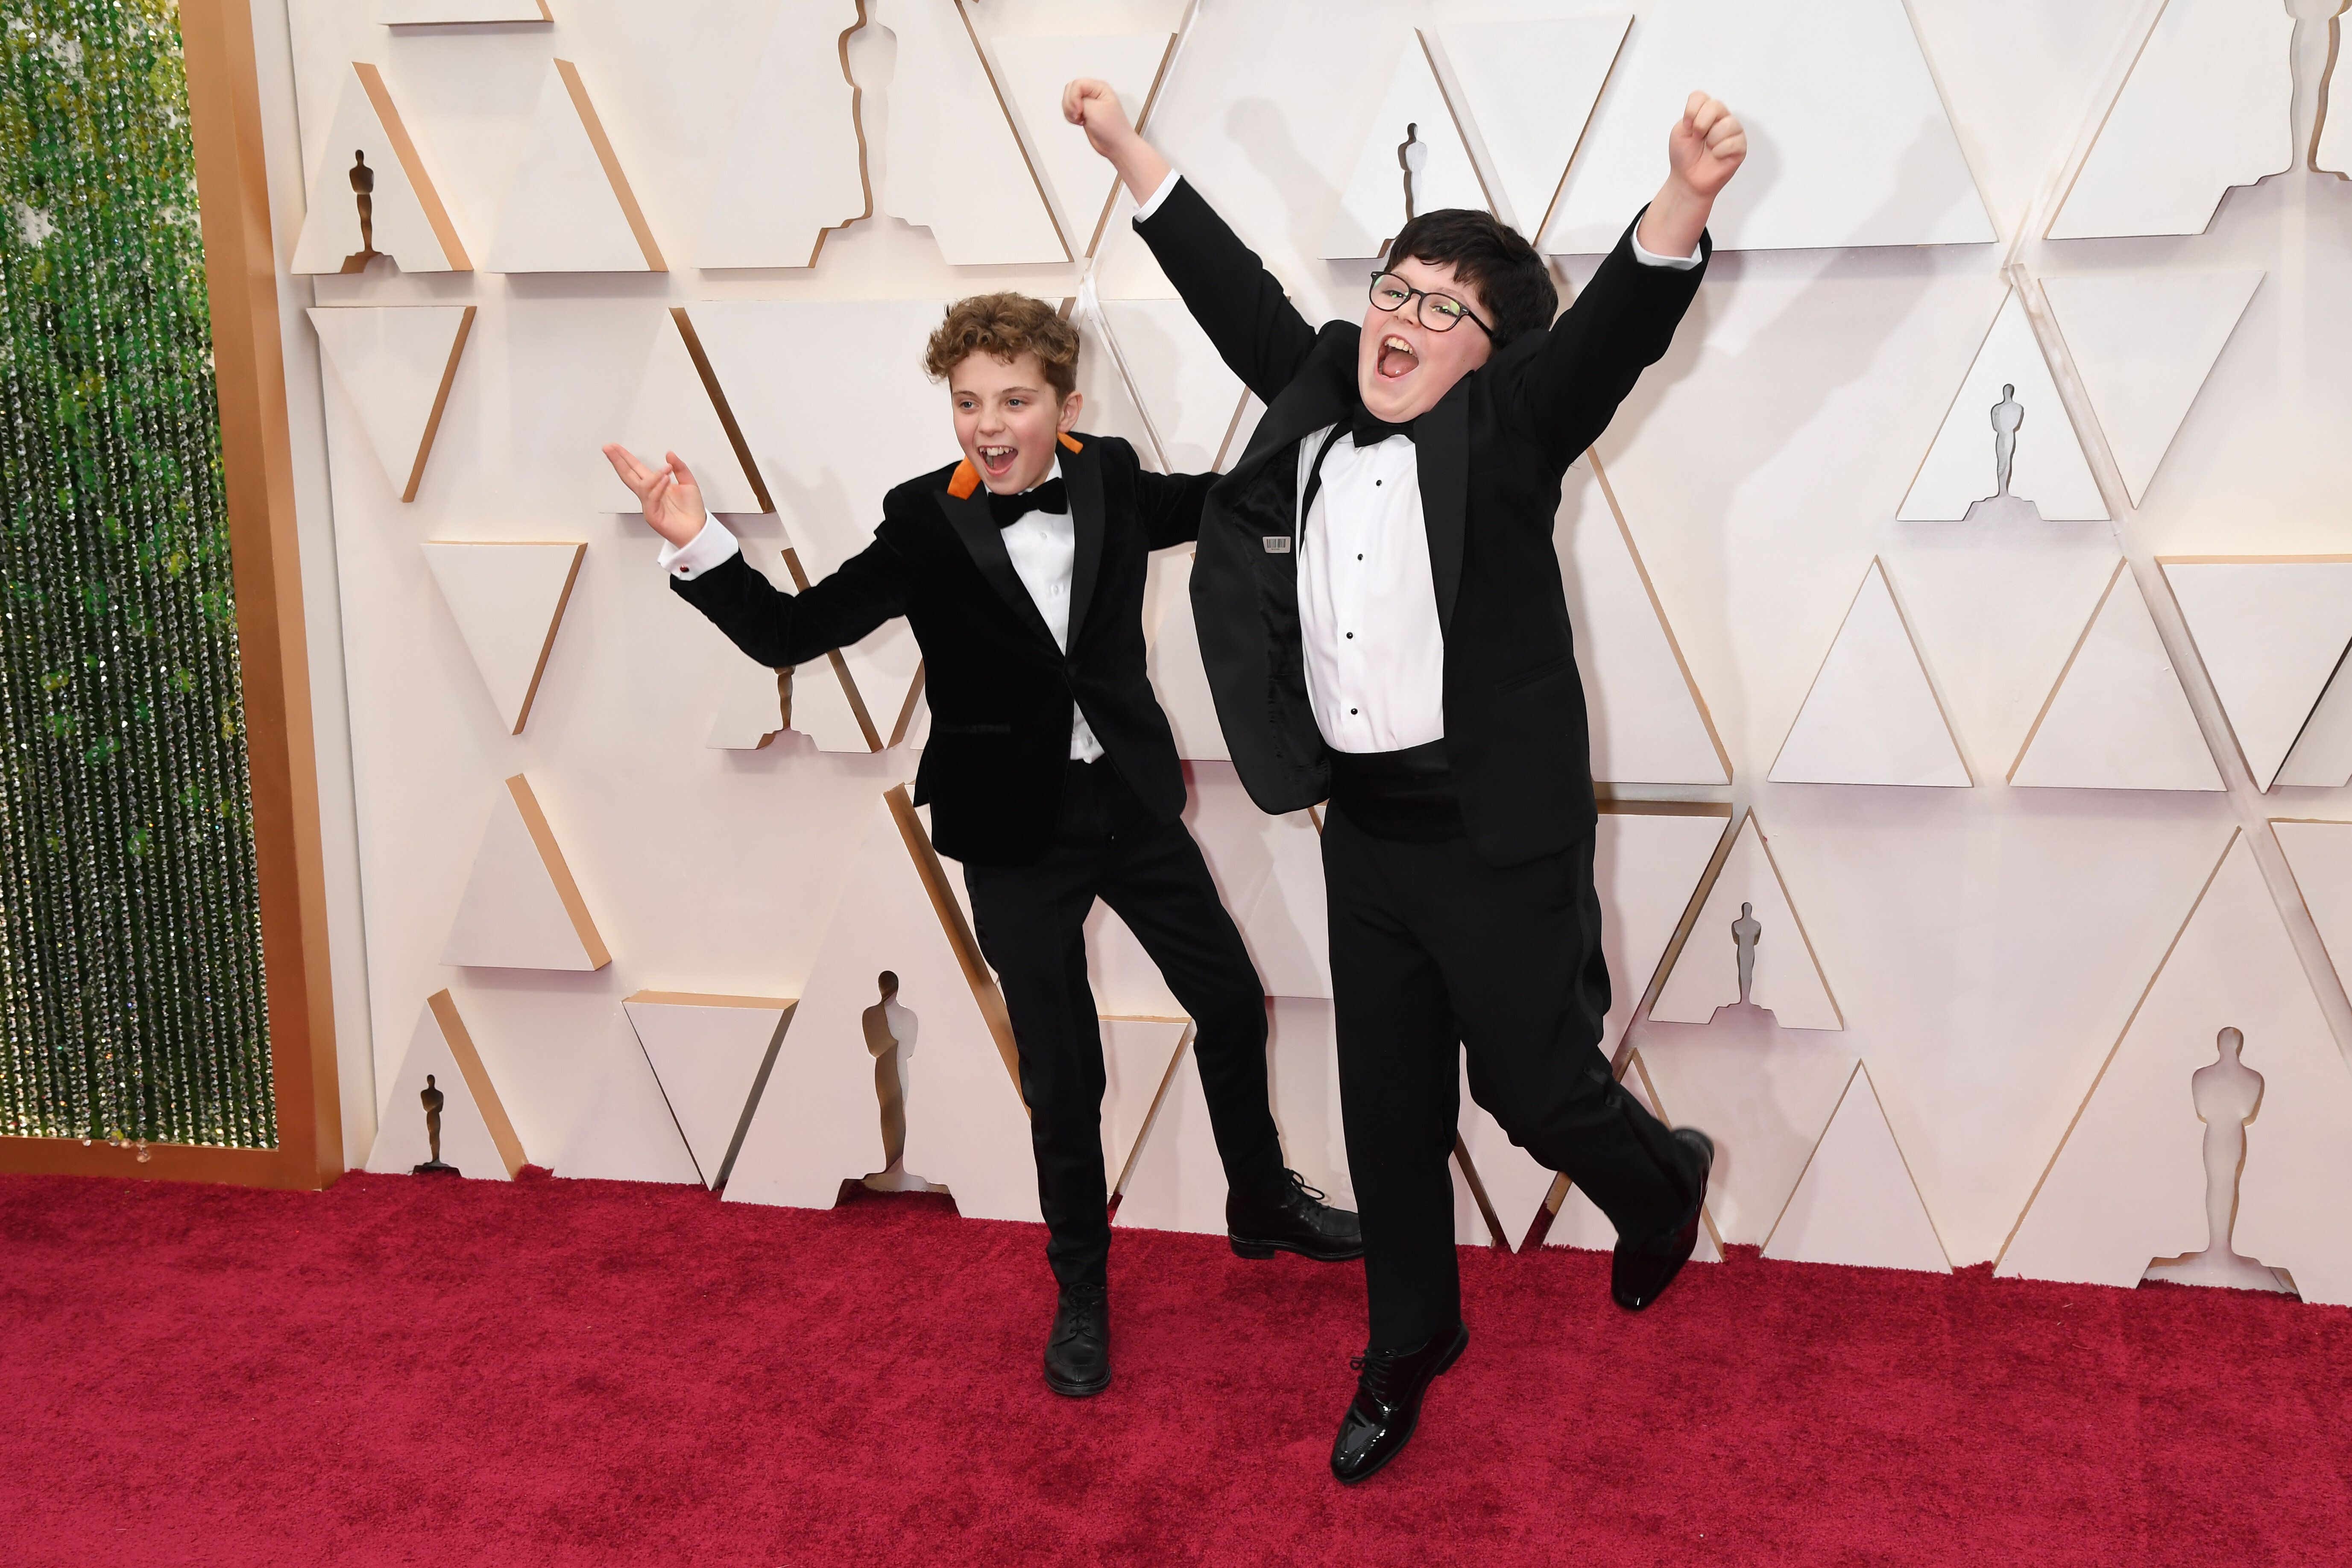 Roman Griffin Davis and Archie Yates at the Oscars.